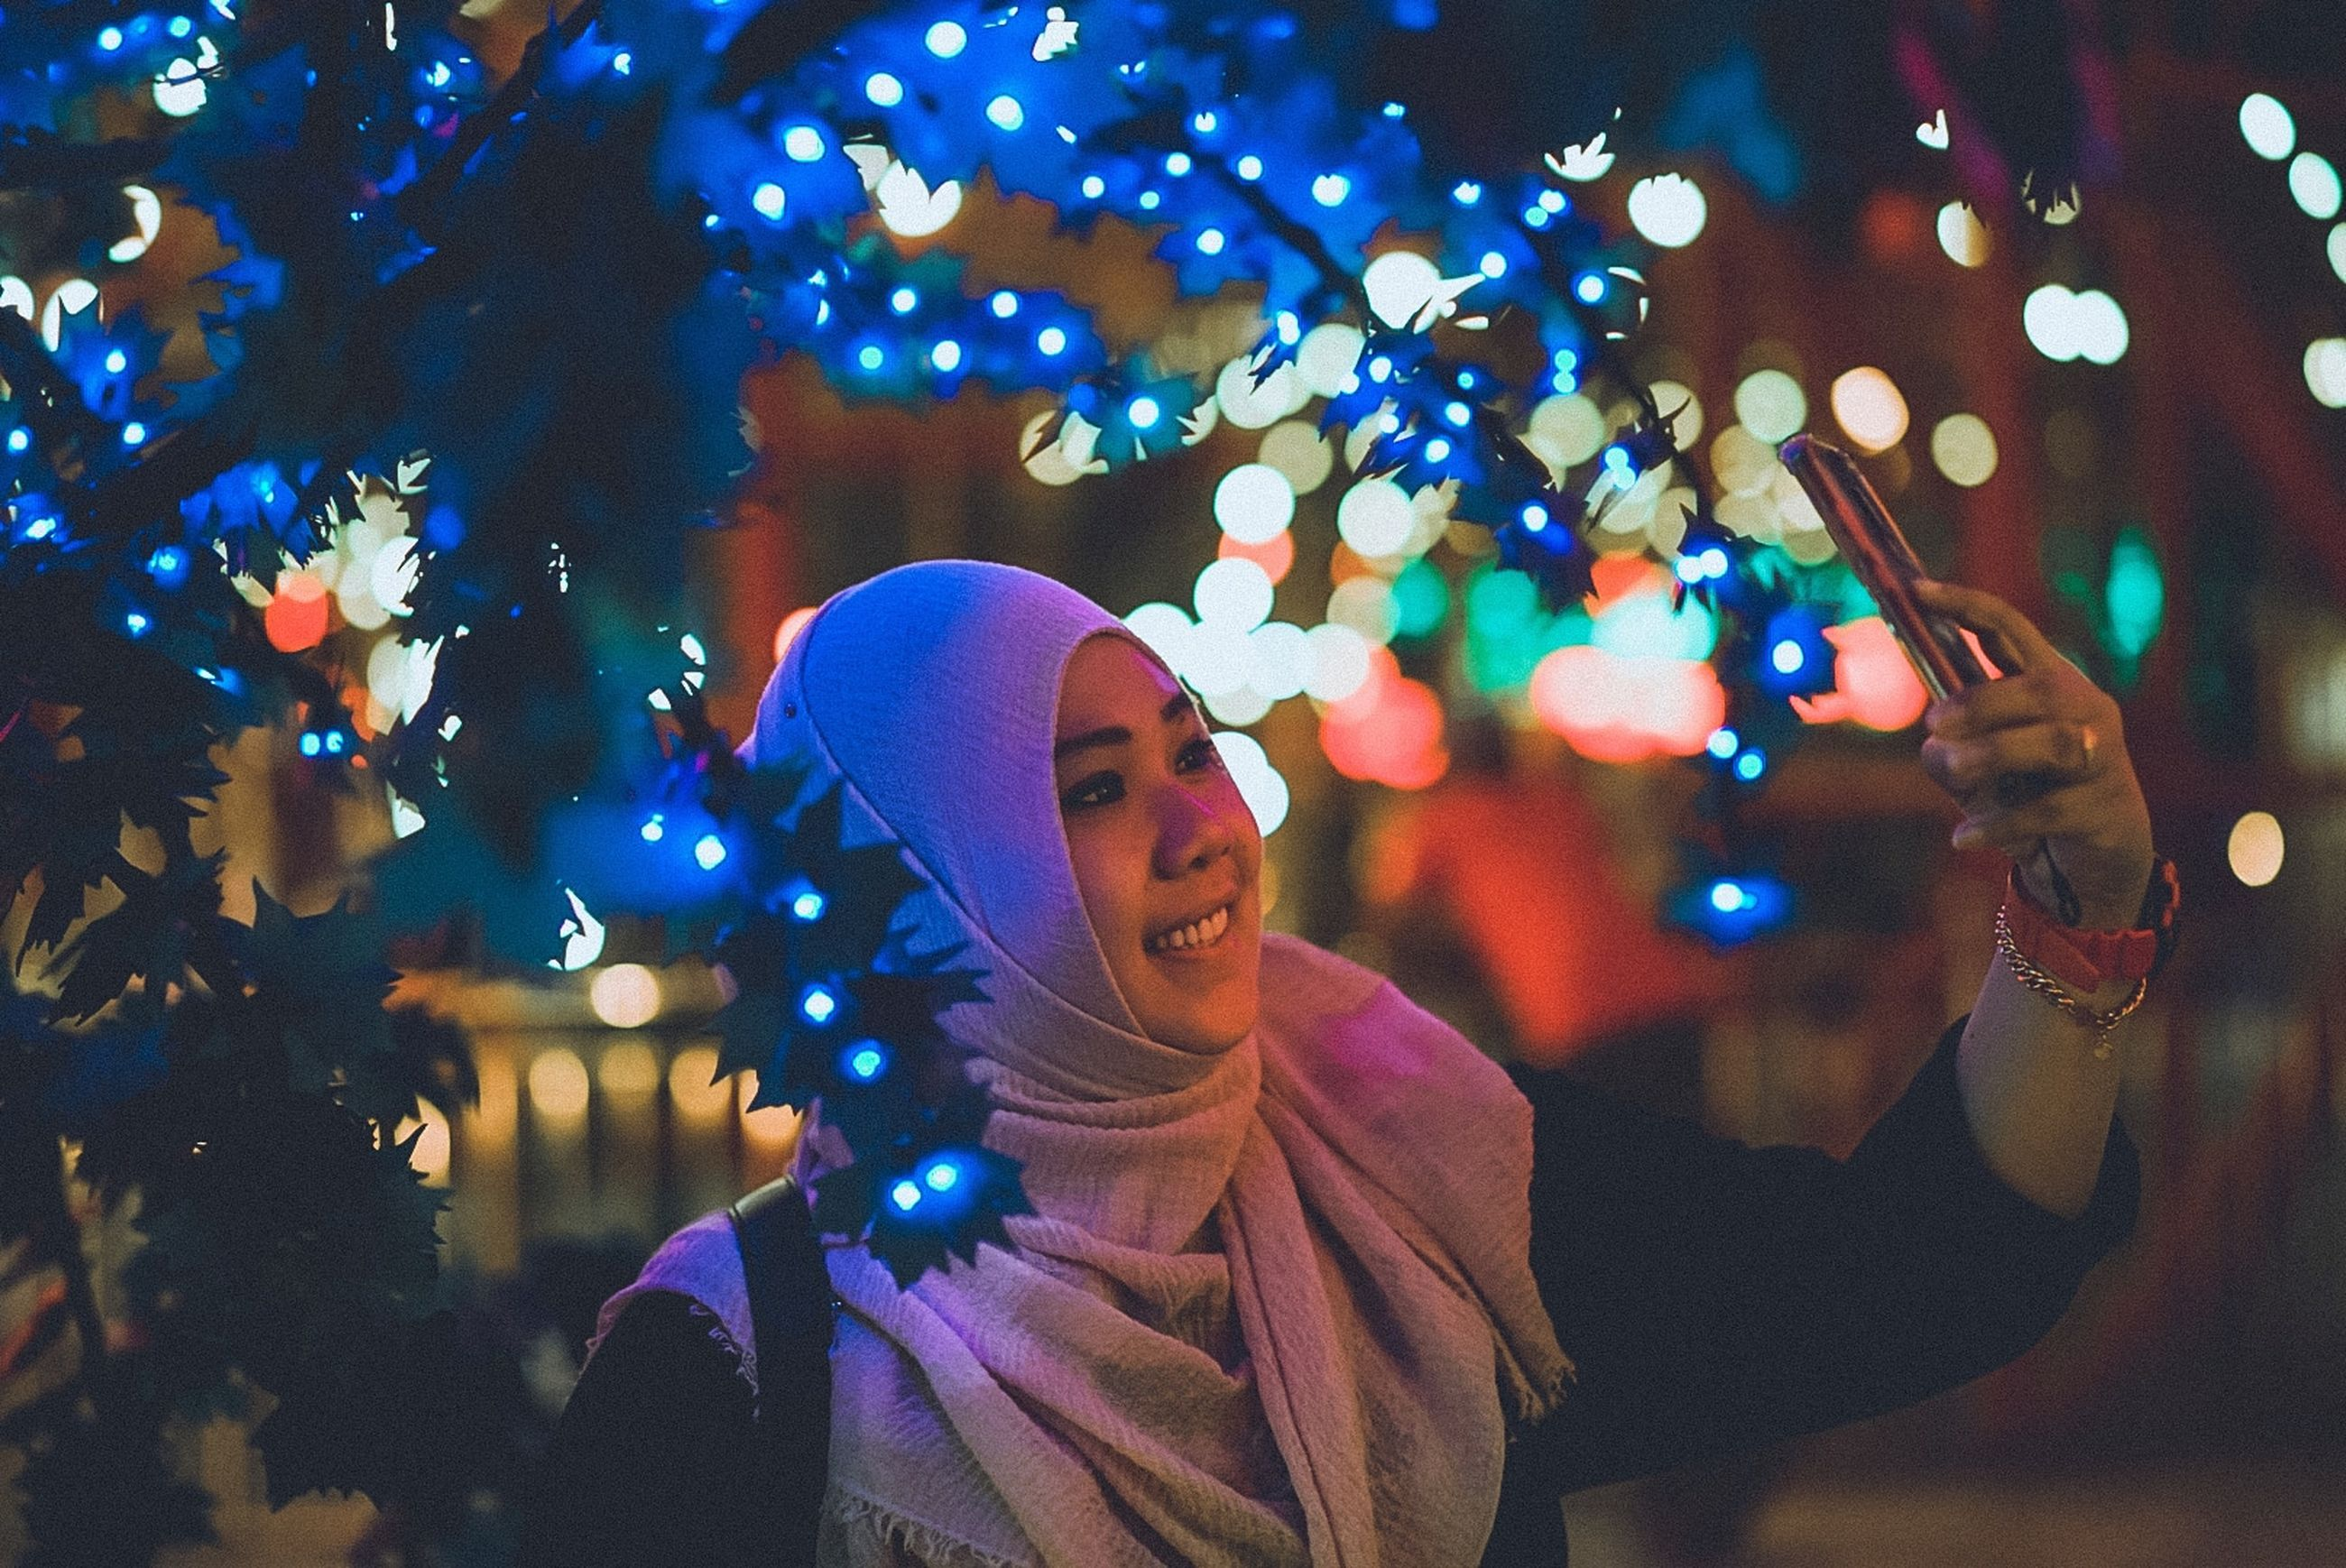 illuminated, one person, night, real people, smiling, happiness, portrait, lifestyles, leisure activity, front view, tree, celebration, young adult, emotion, focus on foreground, clothing, decoration, young men, christmas, light, warm clothing